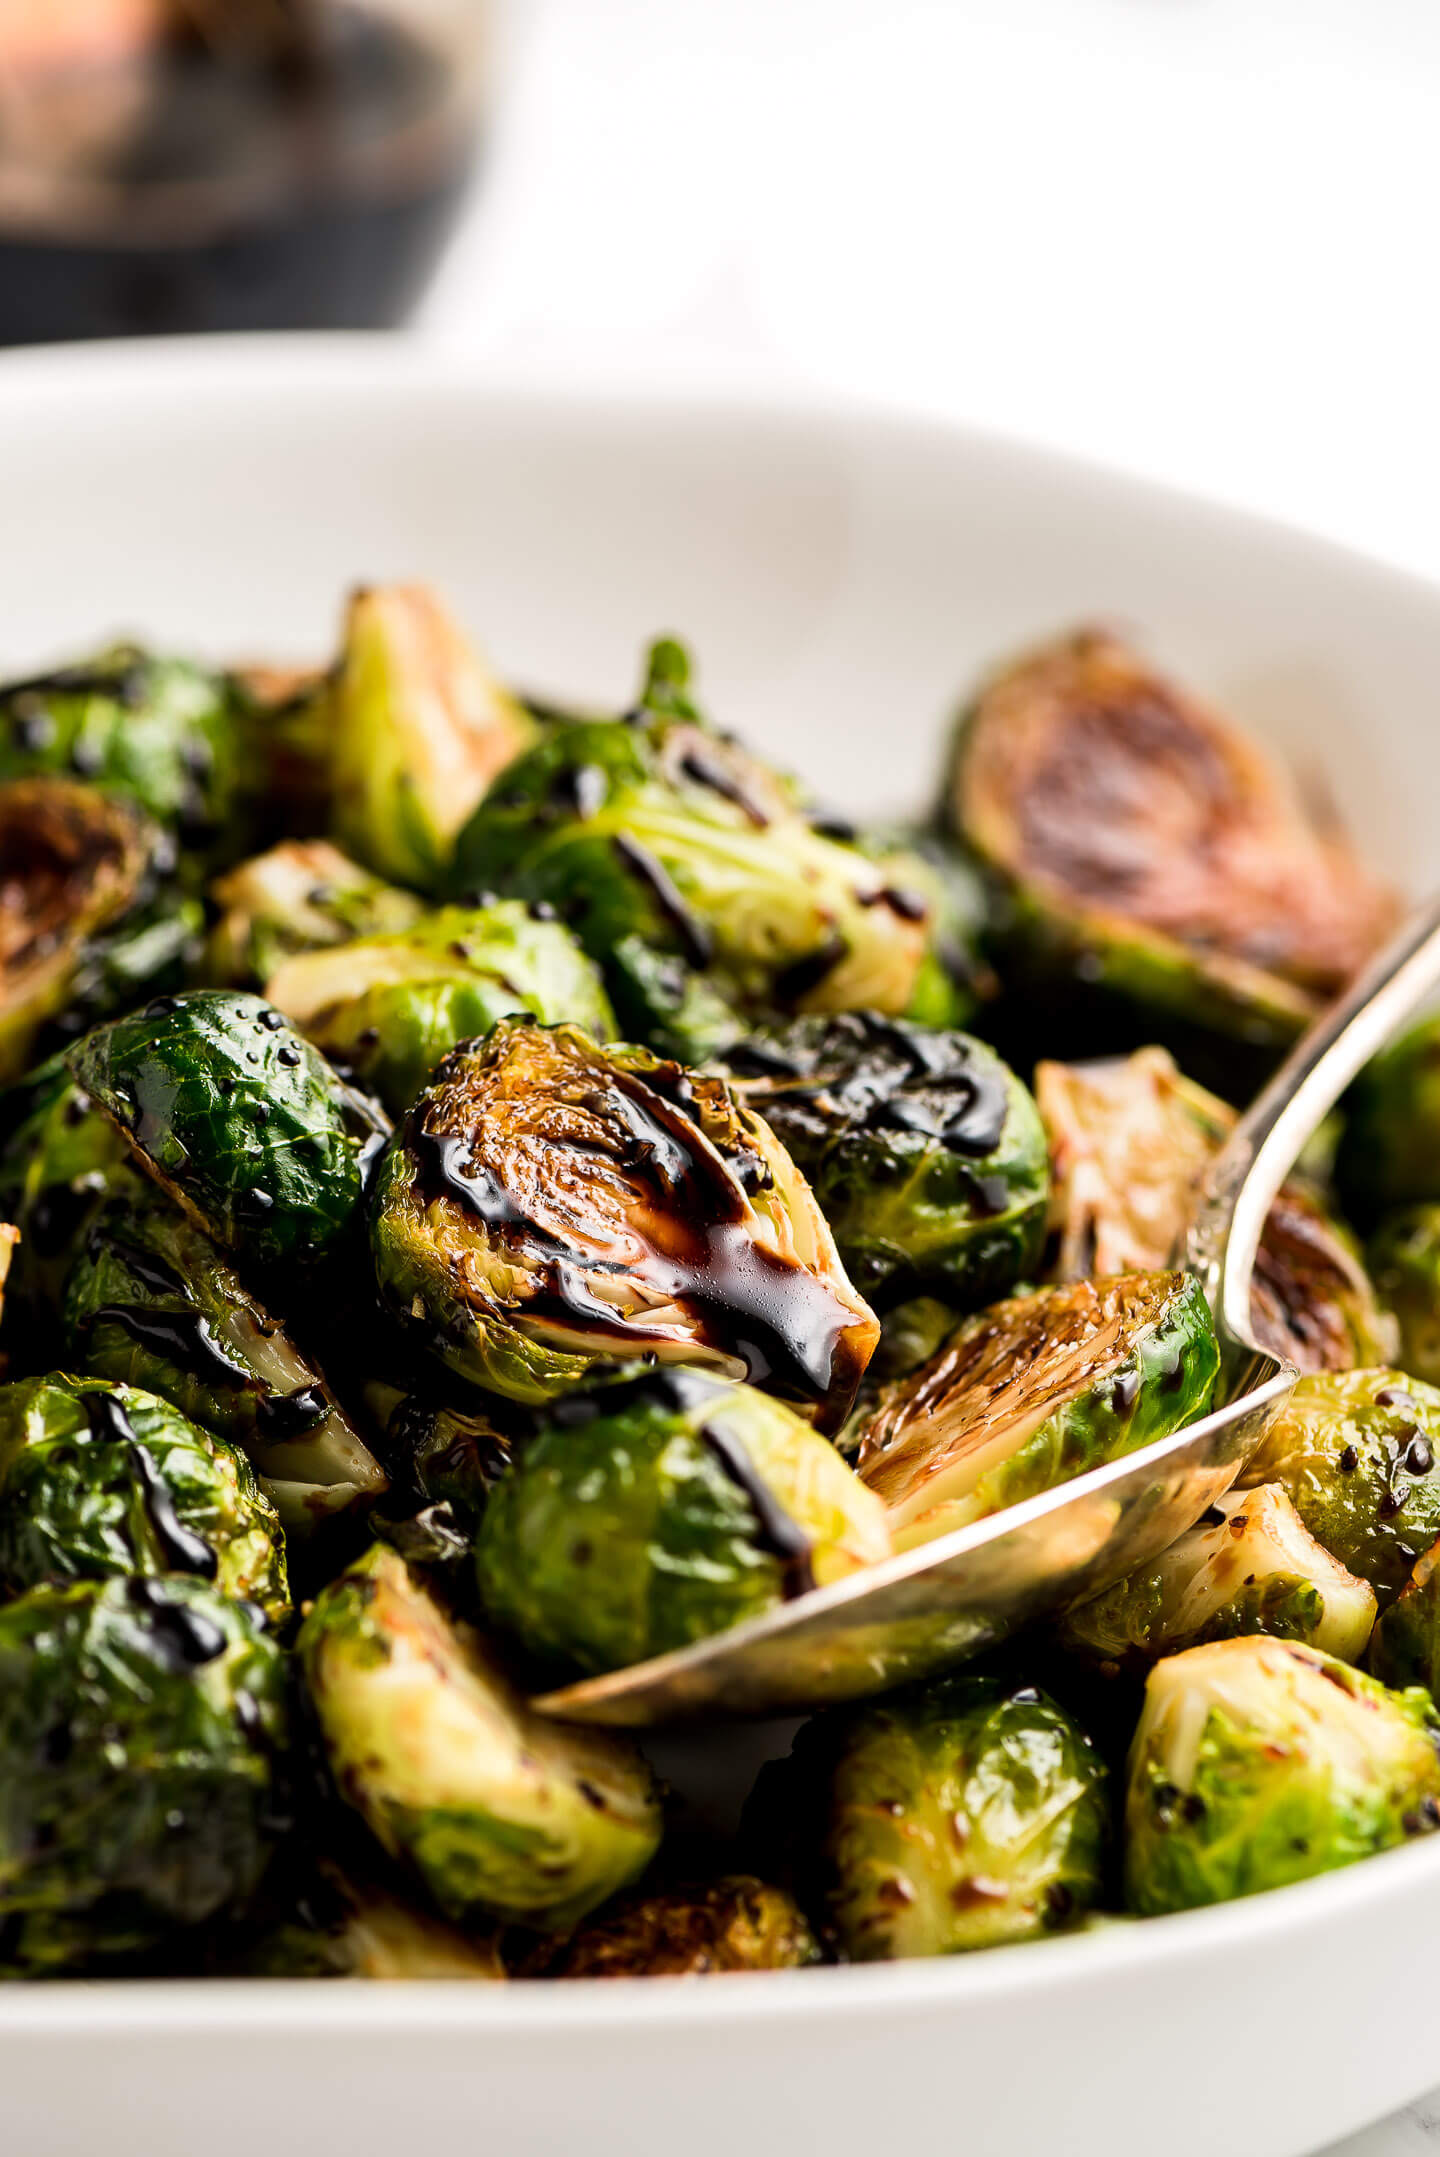 Balsamic Brussel Sprouts in a serving bowl with a spoon.